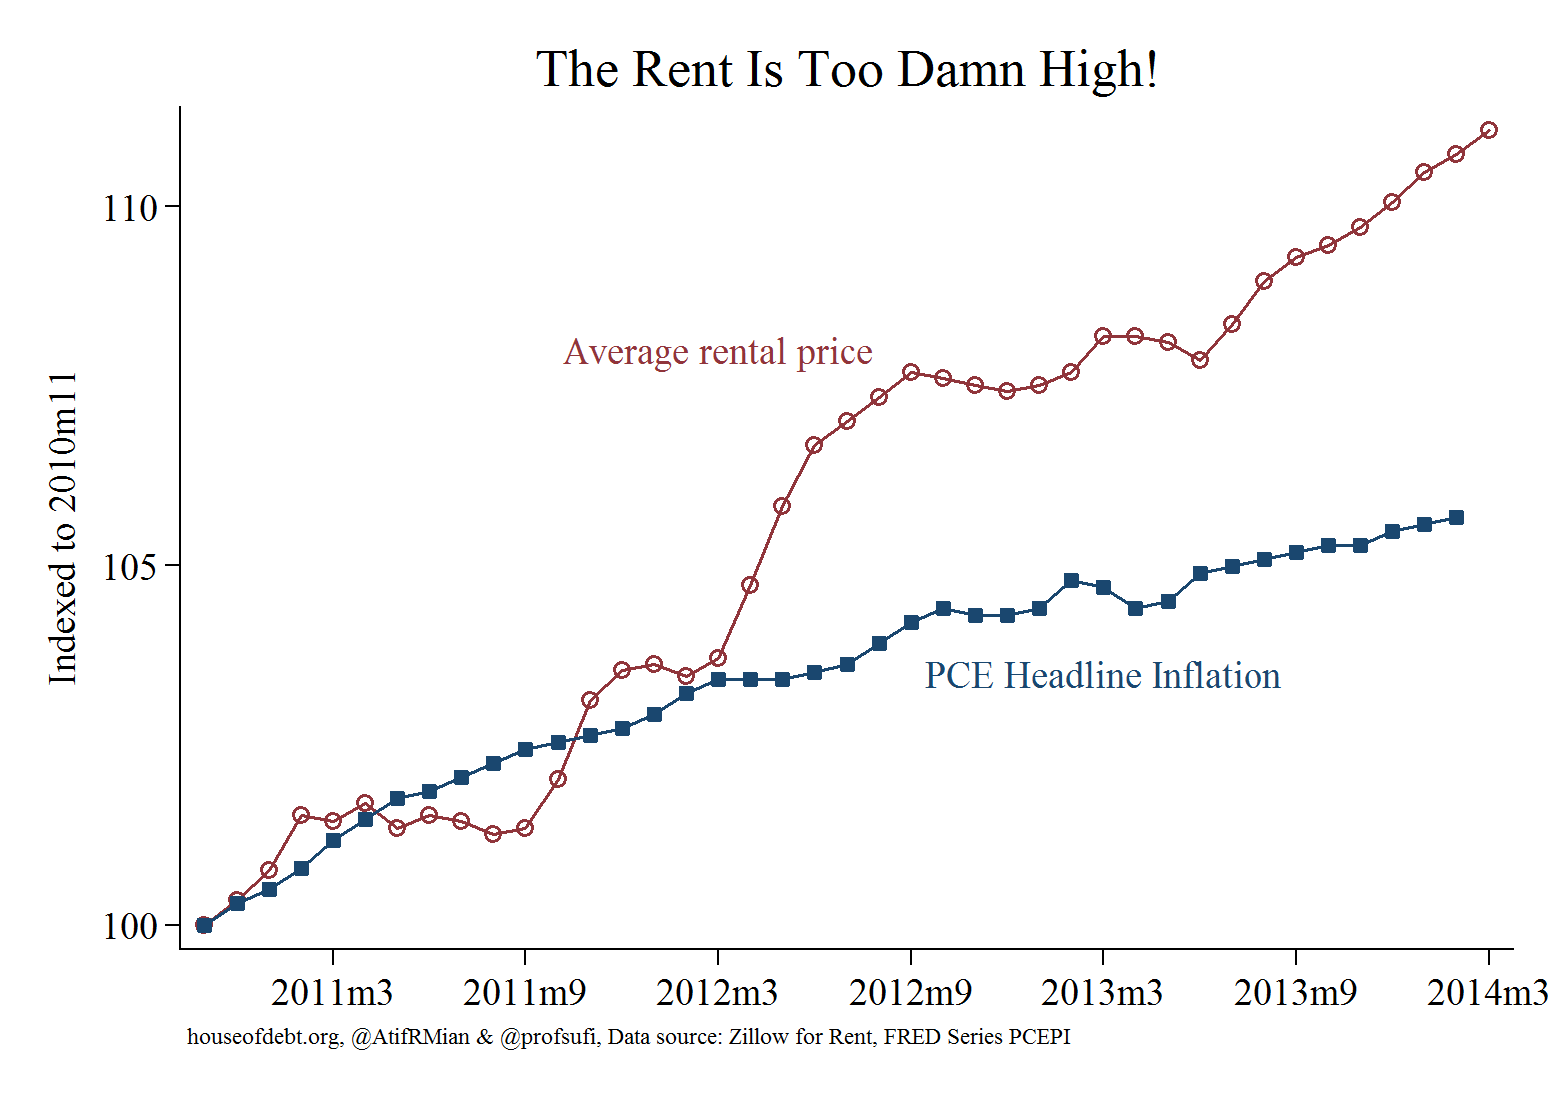 Where Is the Rent Too Damn High?